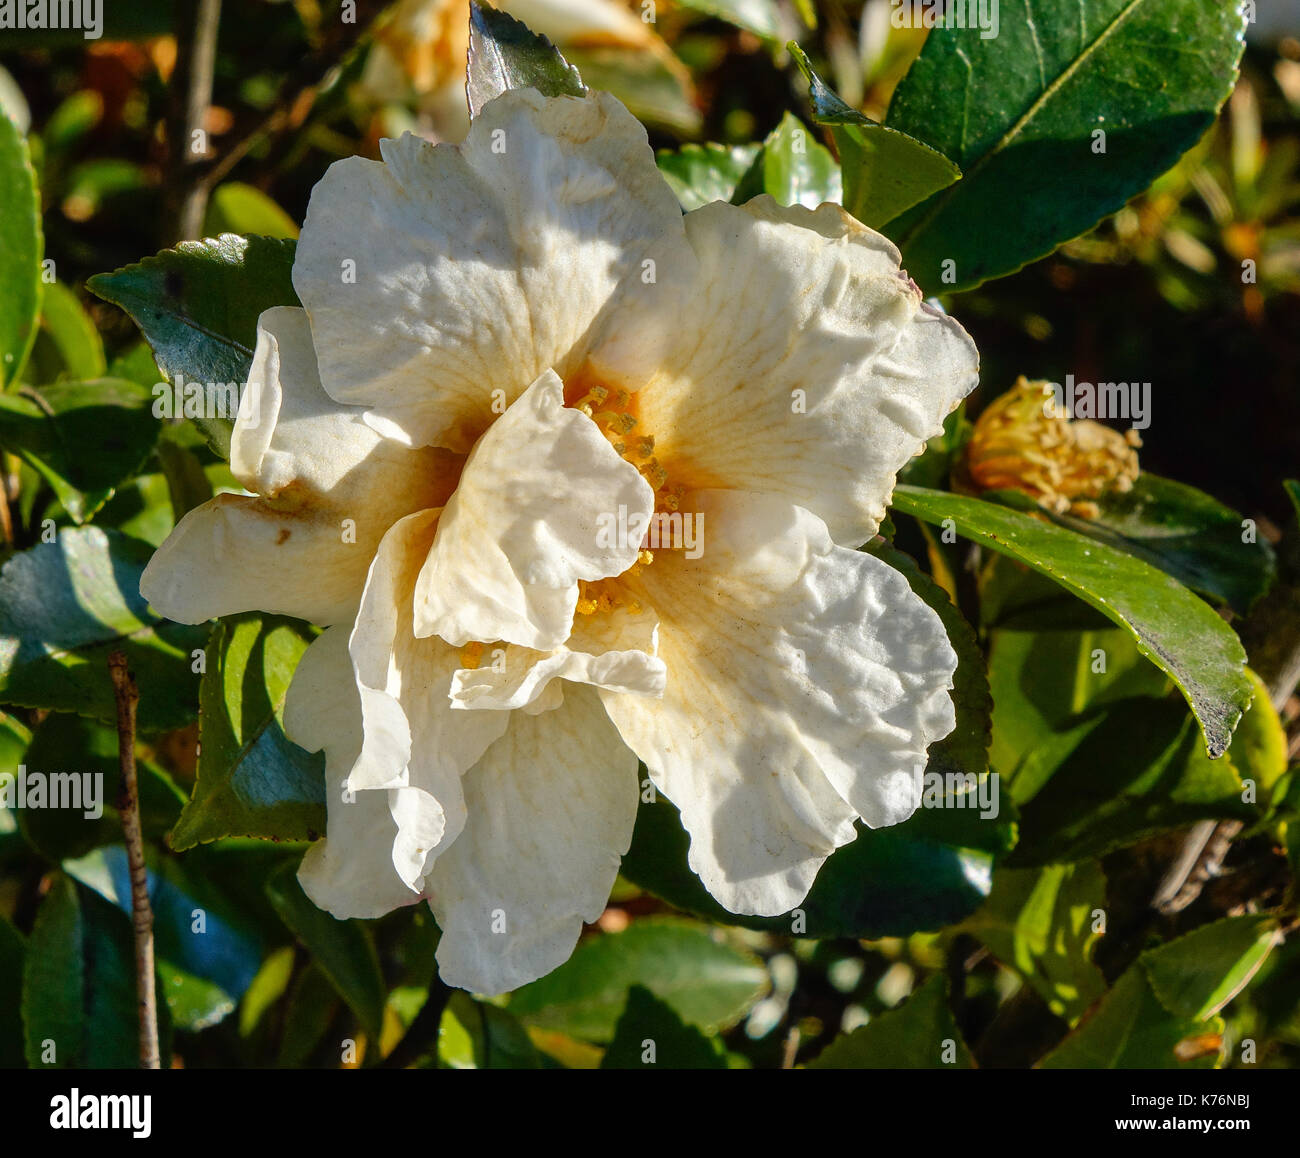 White camellia flowers blooming at japanese garden in autumn close white camellia flowers blooming at japanese garden in autumn close up mightylinksfo